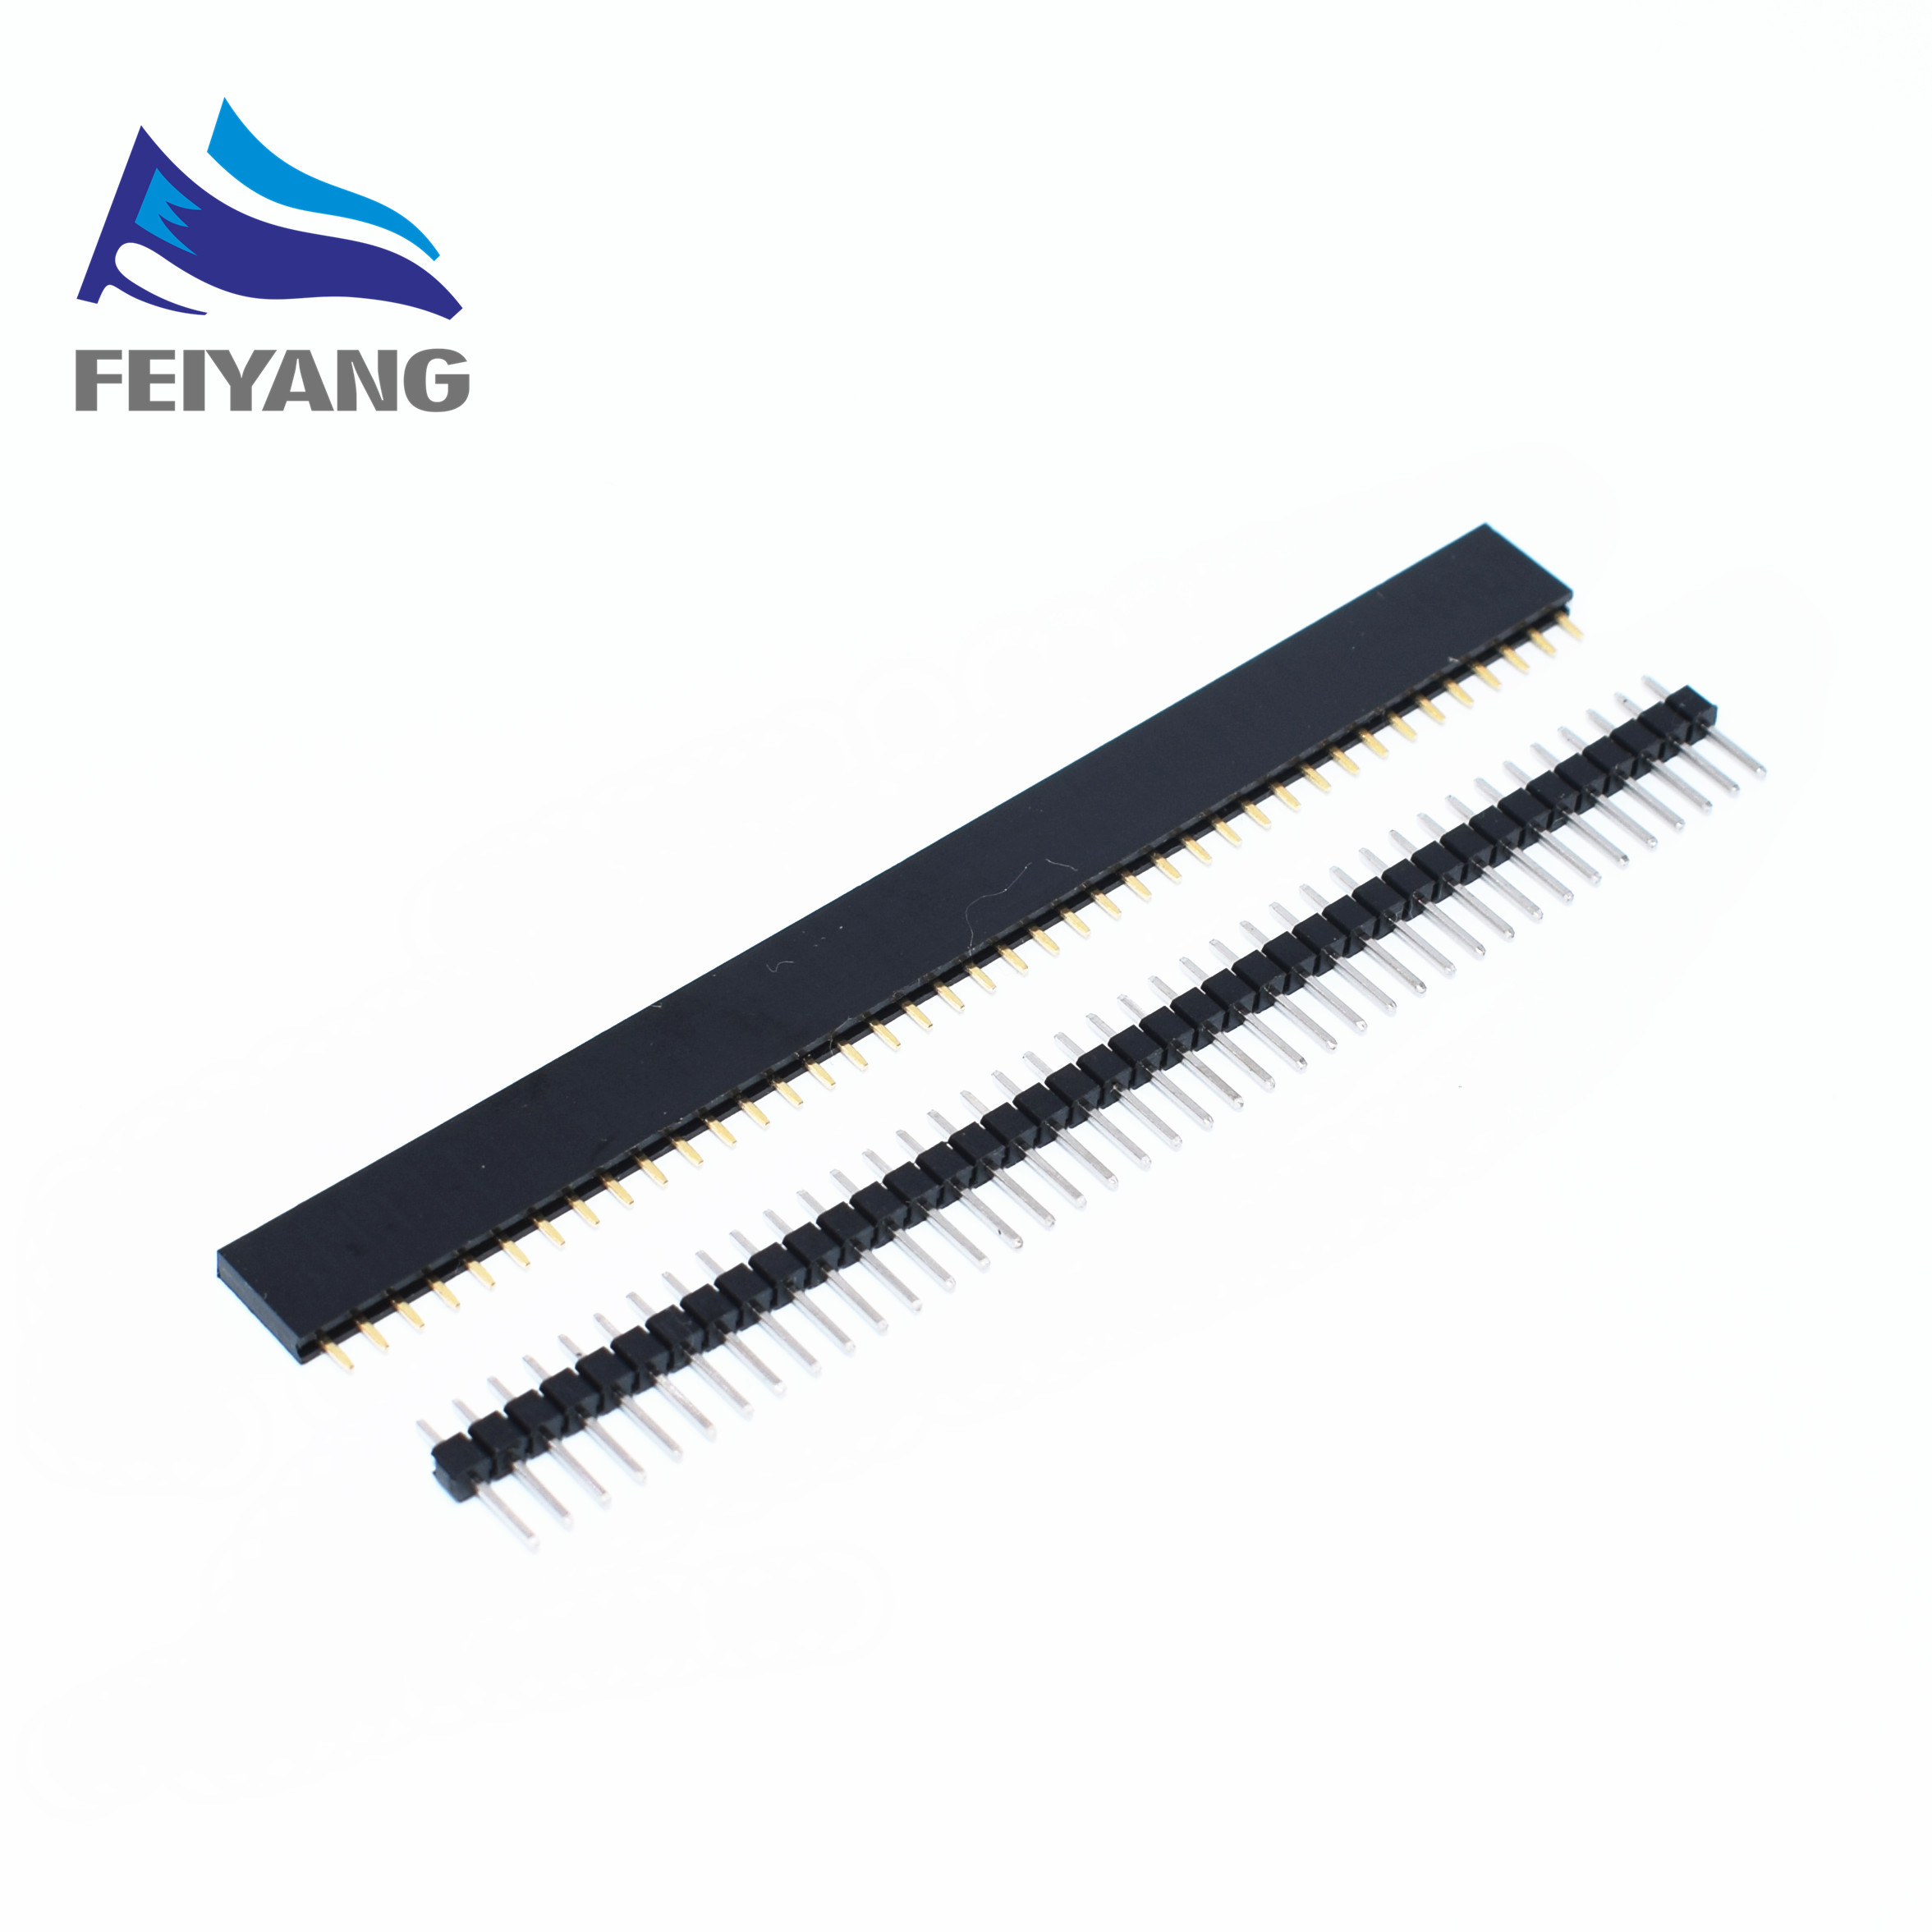 40p Male Single Row Each 10pcs New In Tock High Quality Hot Sale Danmu+danpai Electronic Components & Supplies Integrated Circuits Beautiful 20pcs/lot 40 Pin 2.54mm Female Single Row